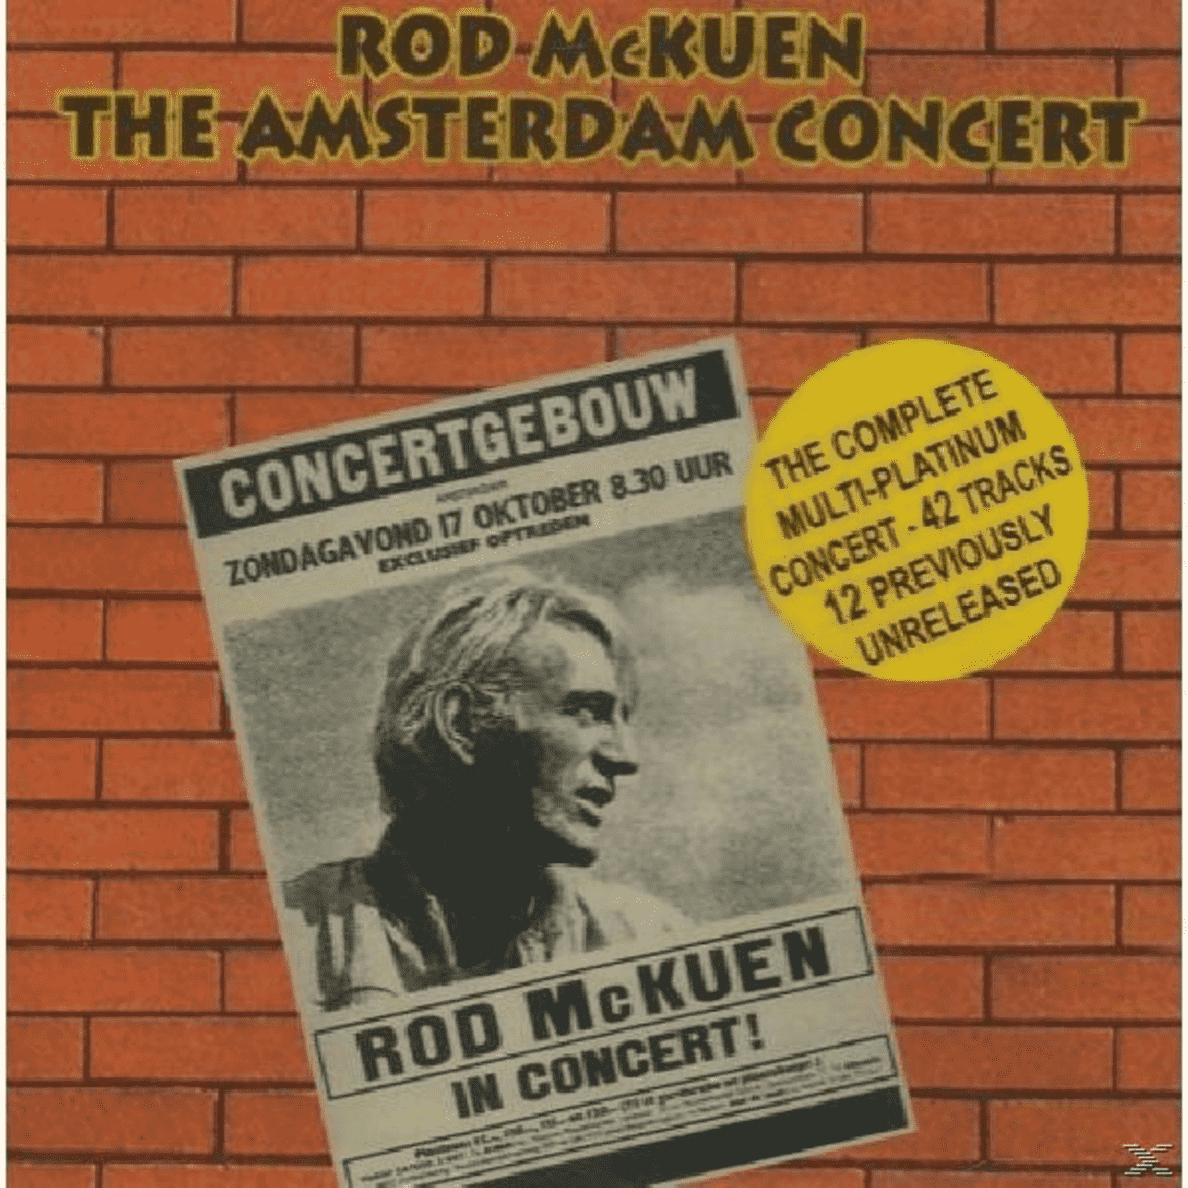 The Amsterdam Concert